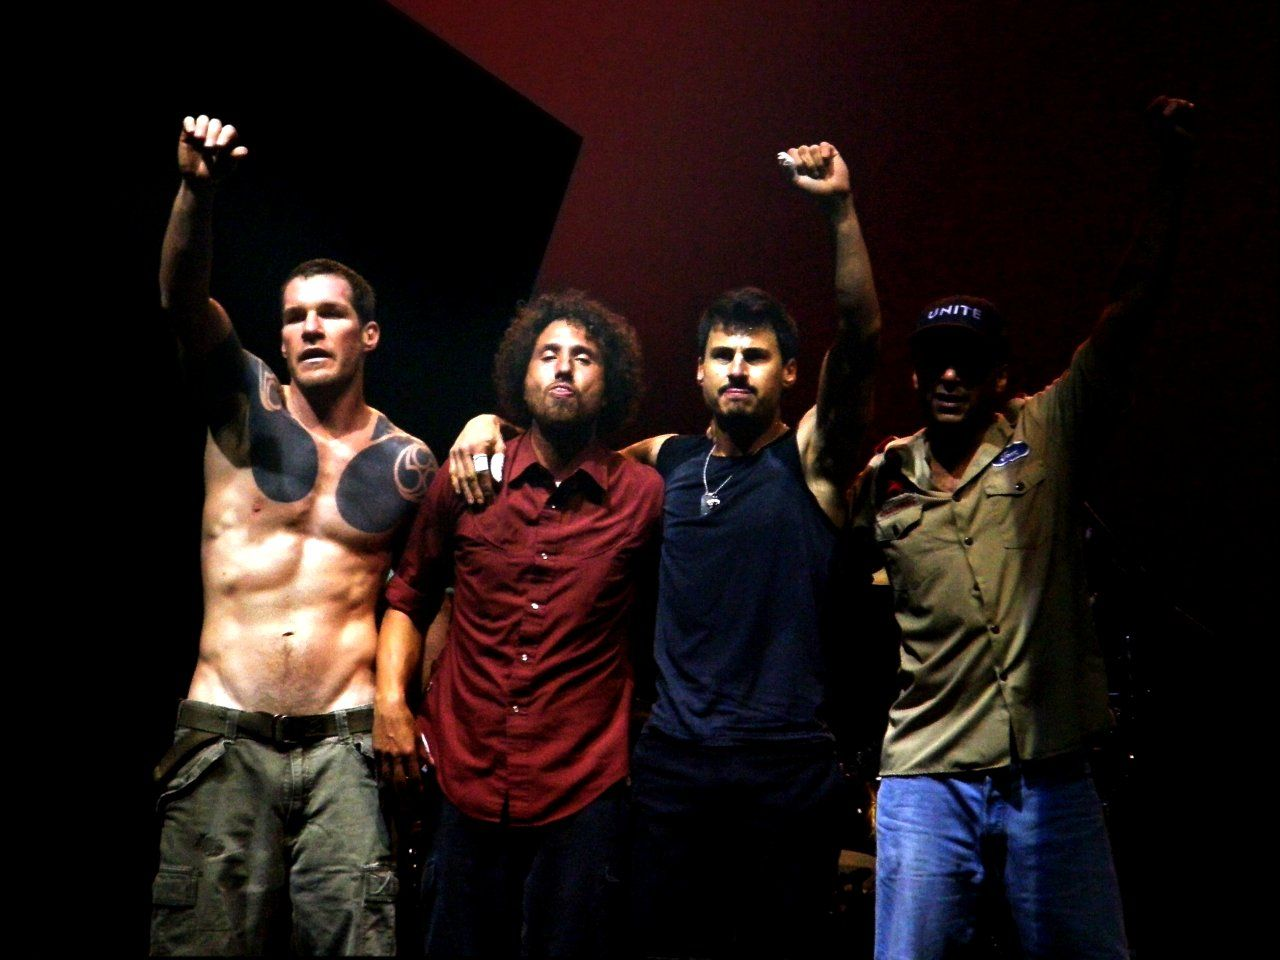 Image Detail For Rage Against The Machine Wallpaper Music